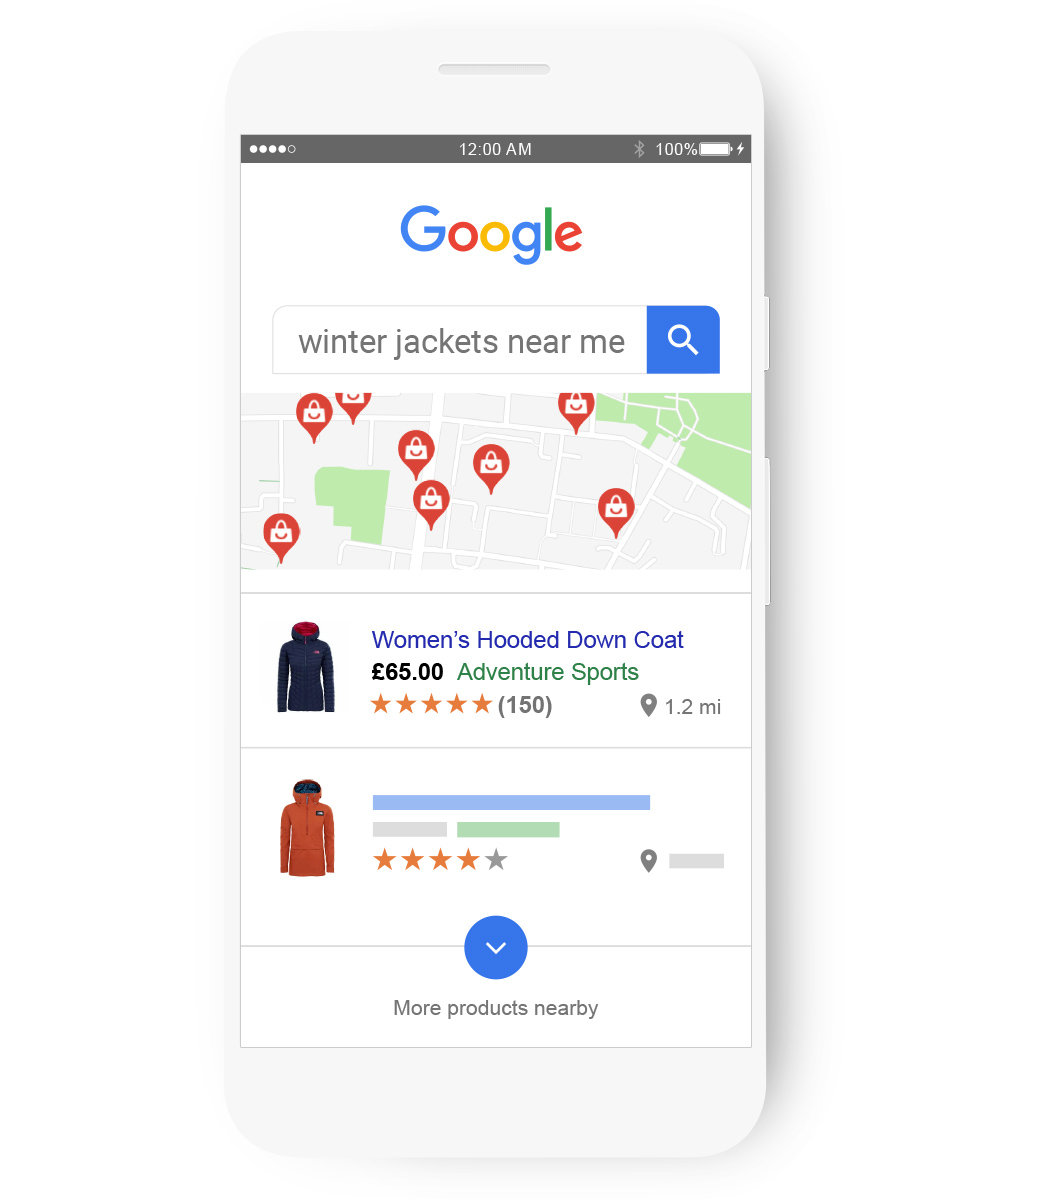 A search for 'winter jackets near me' brings up a map of shop locations